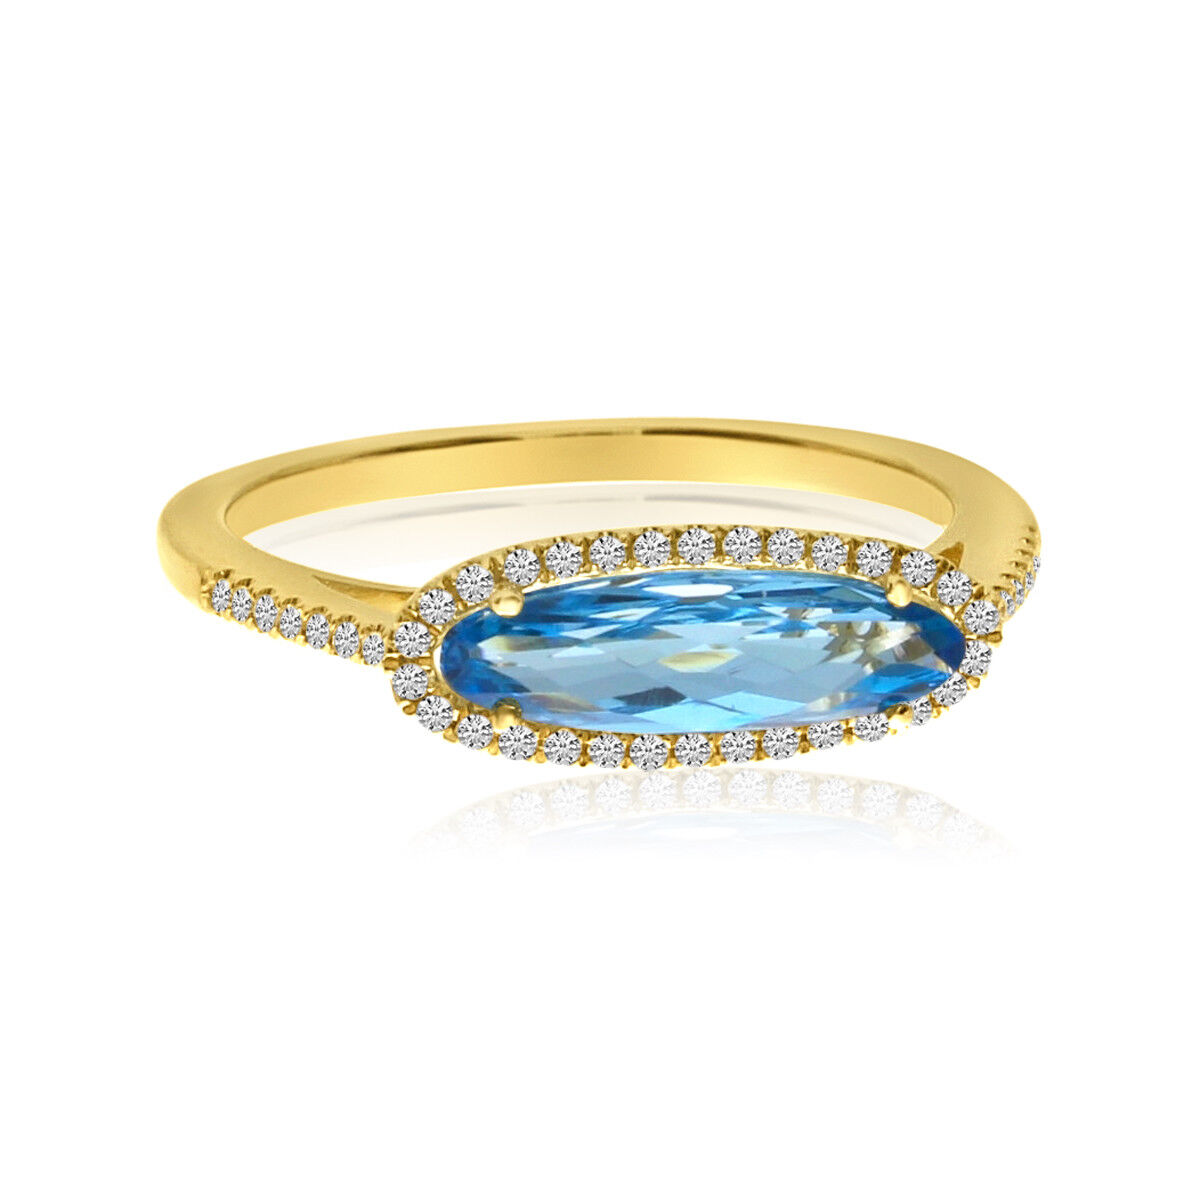 14K Yellow gold Elongated Oval bluee Topaz and Diamond Ring